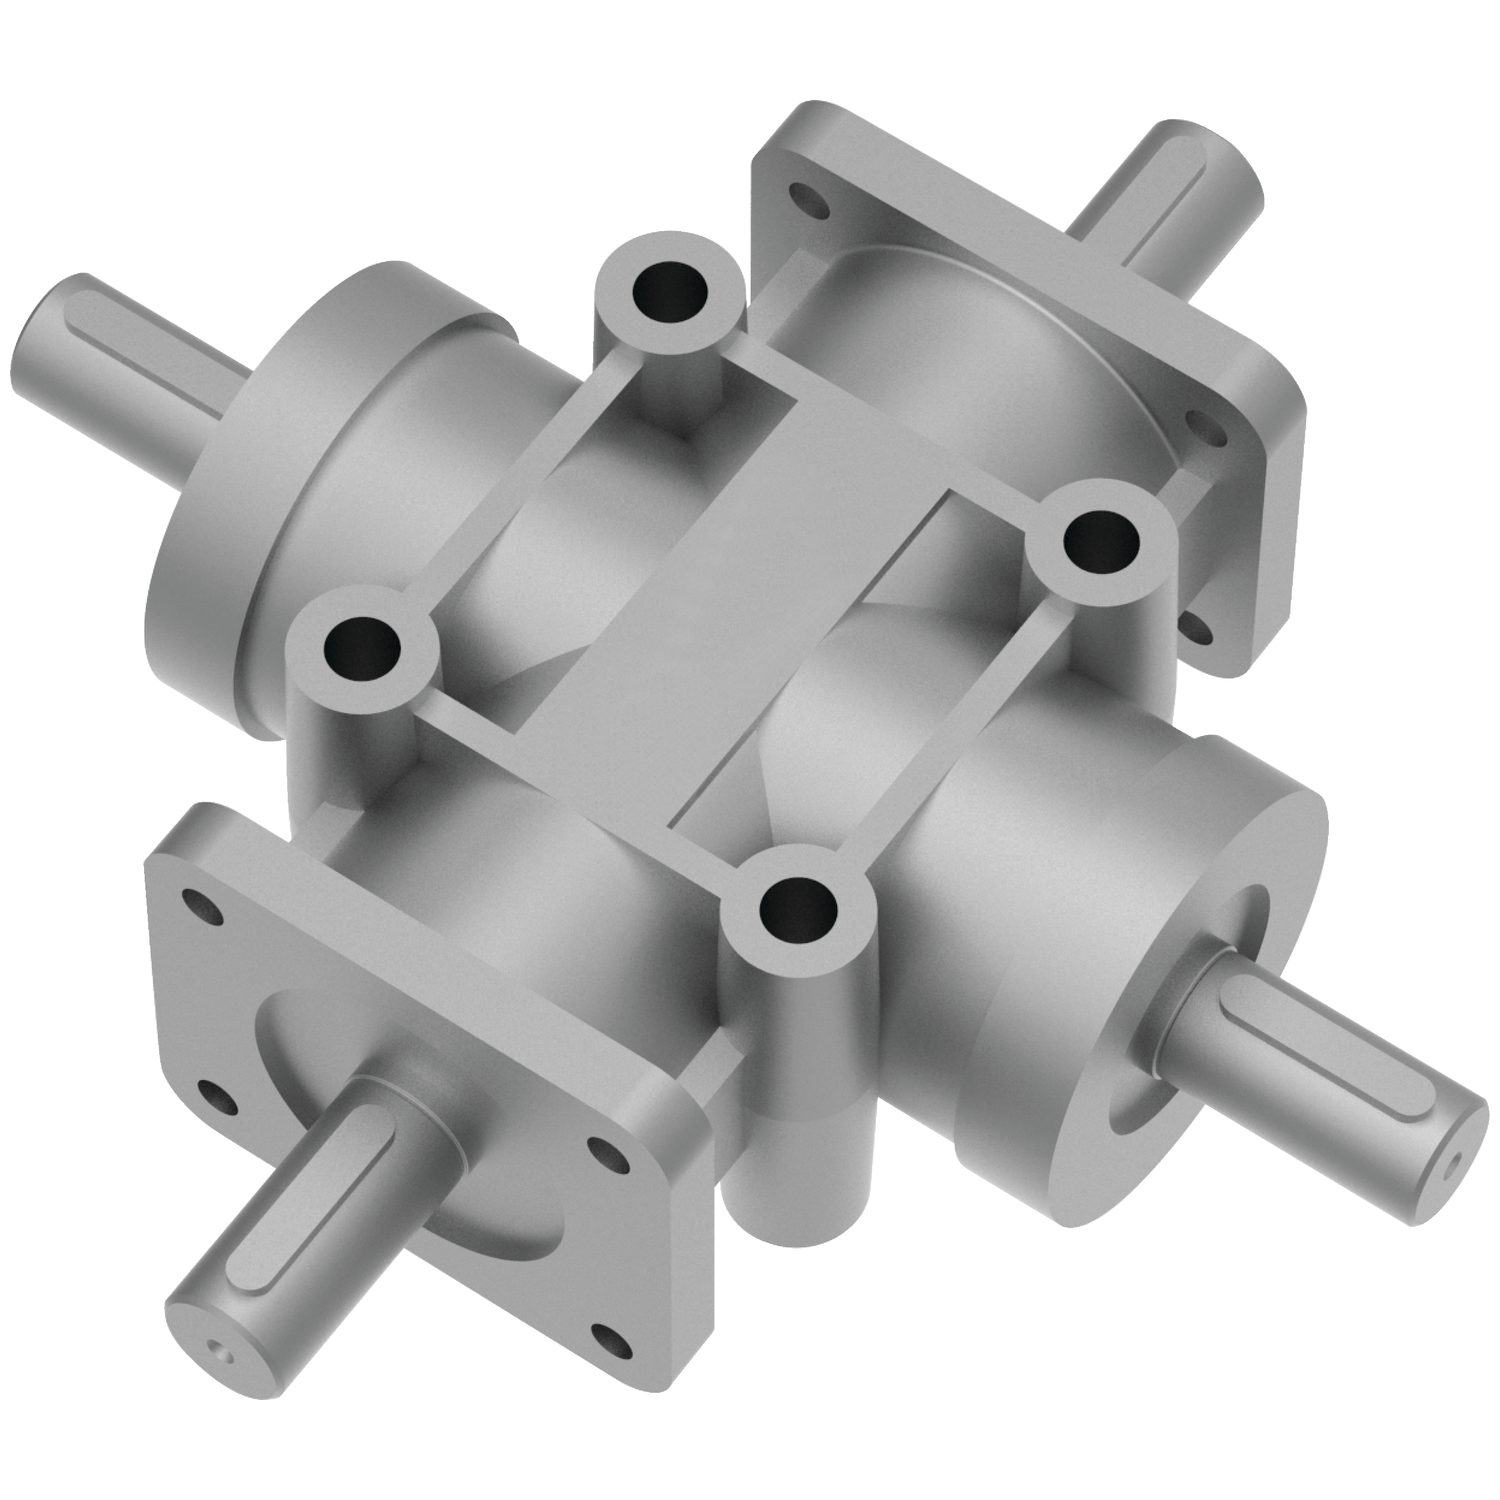 R2345 - Right Angle Drives - 4 Shafts